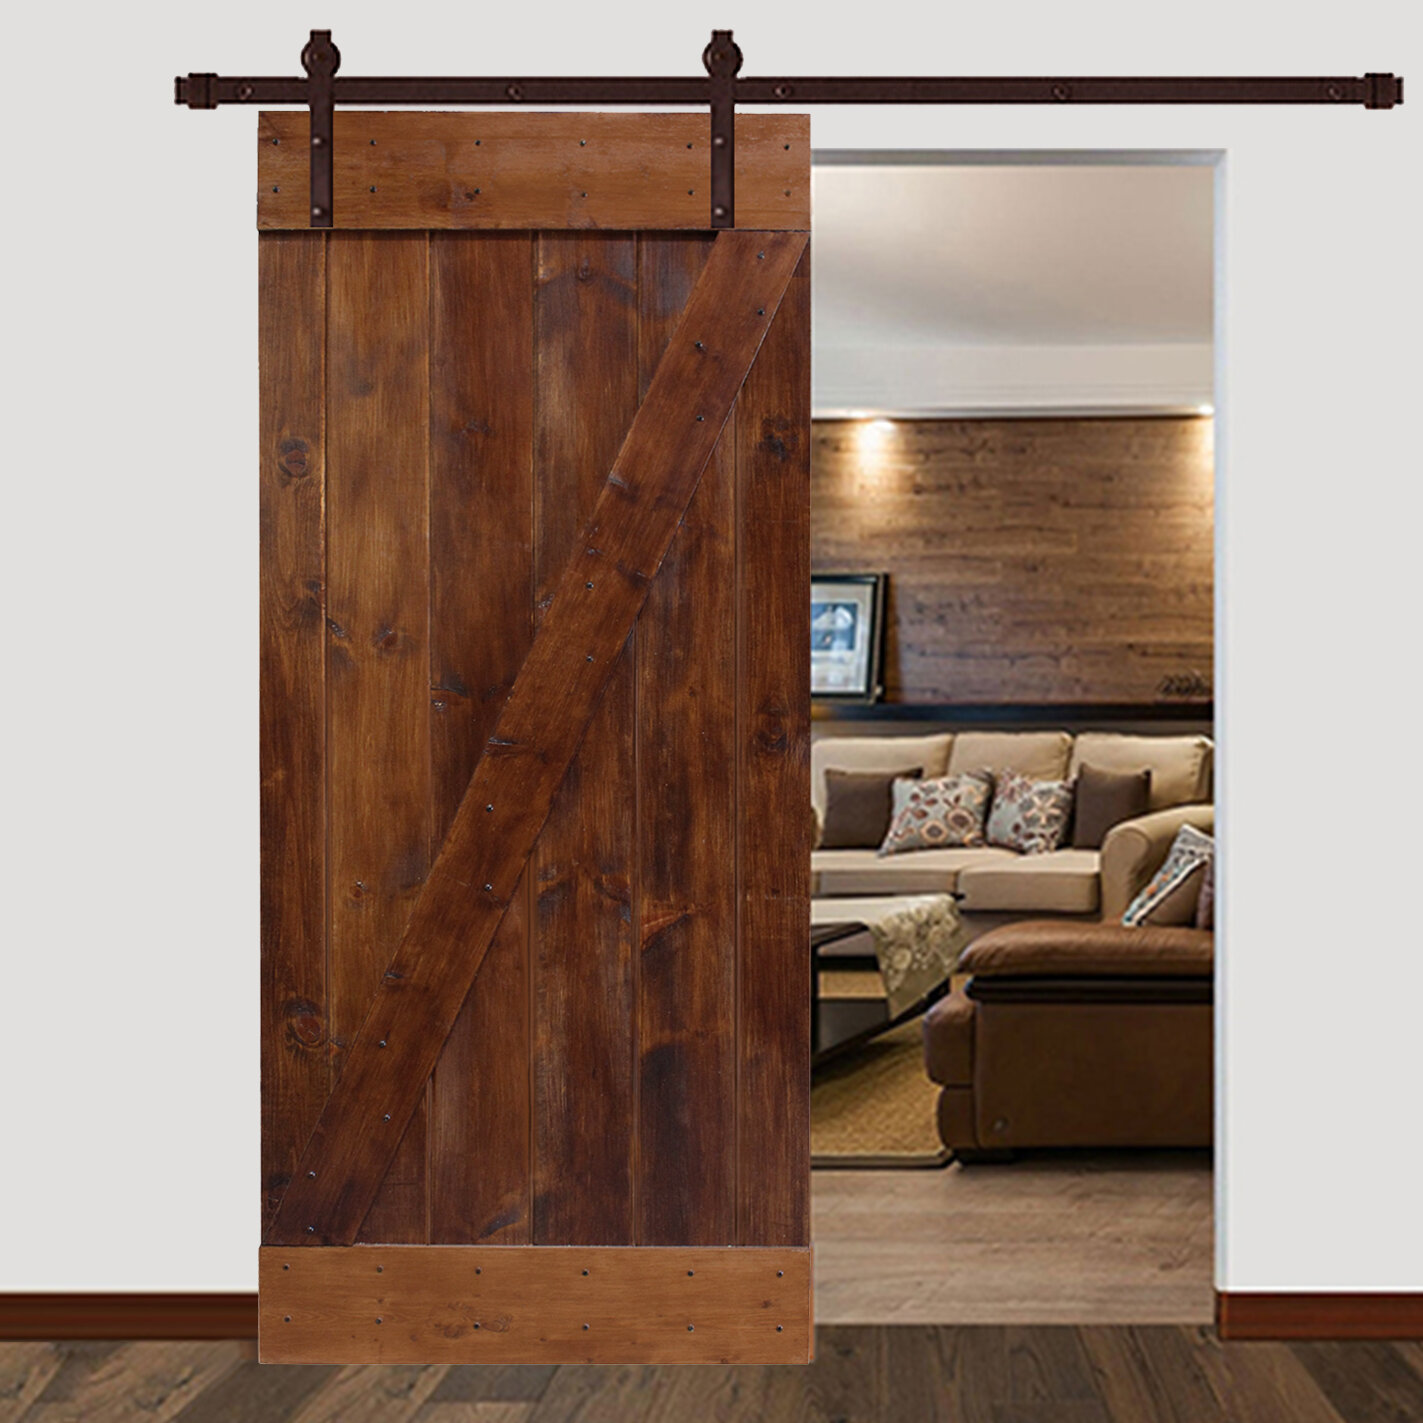 Calhome Paneled Wood Barn Door With Installation Hardware Kit Reviews Wayfair